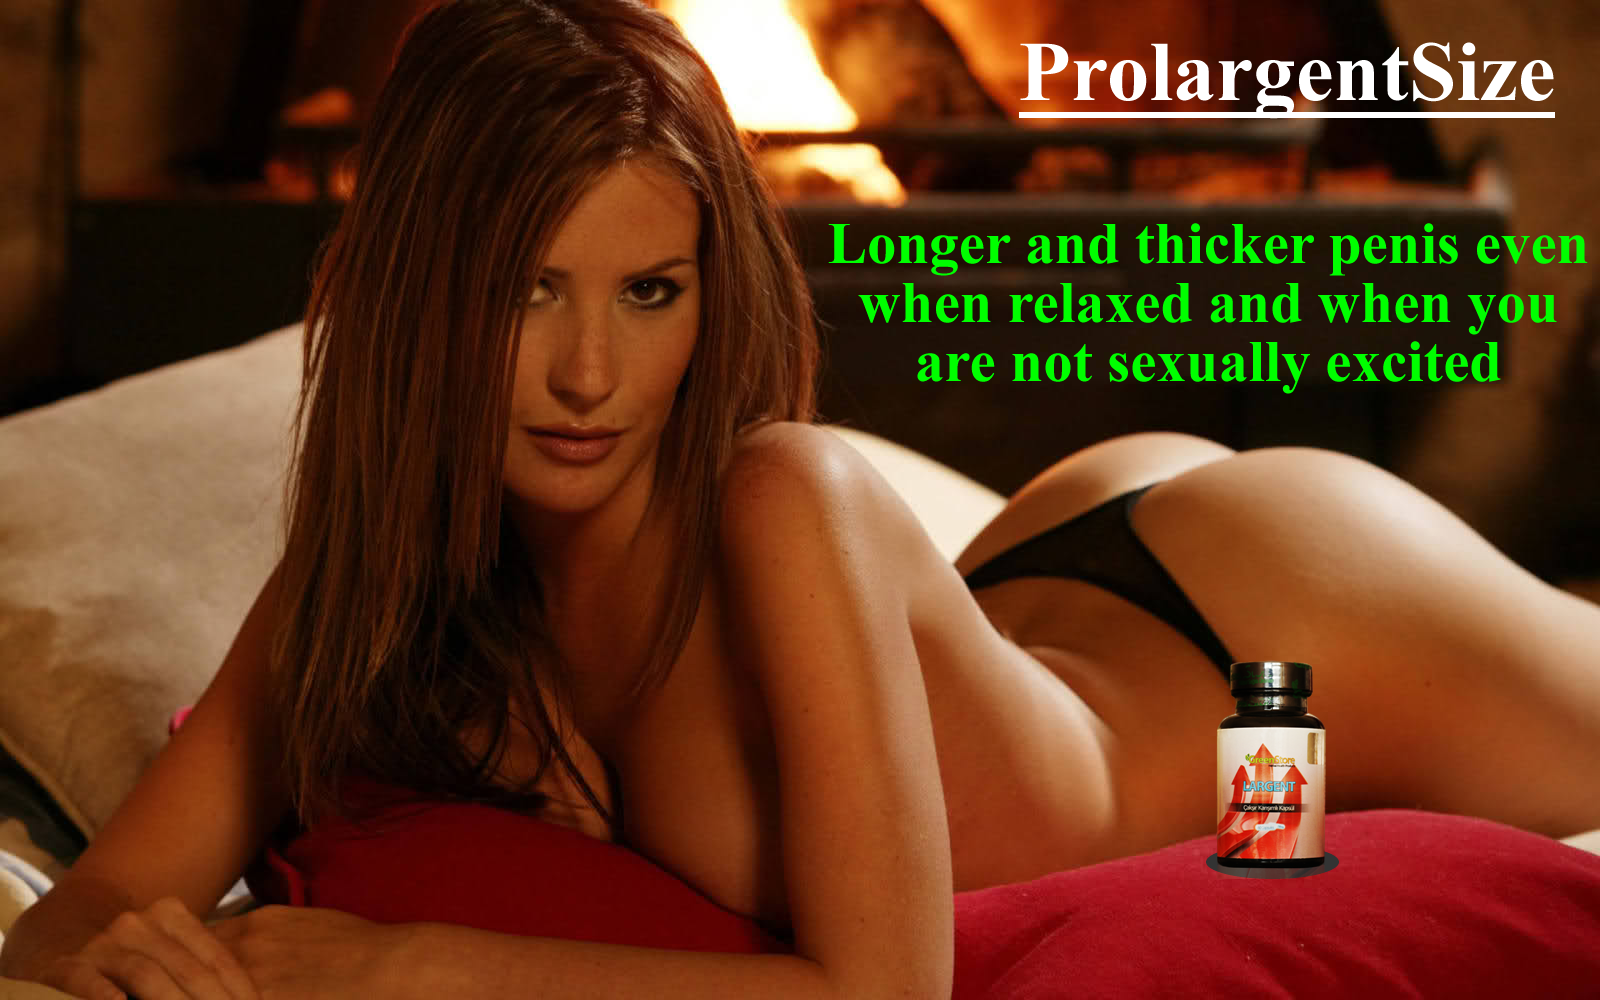 prolargentsize herbal capsule